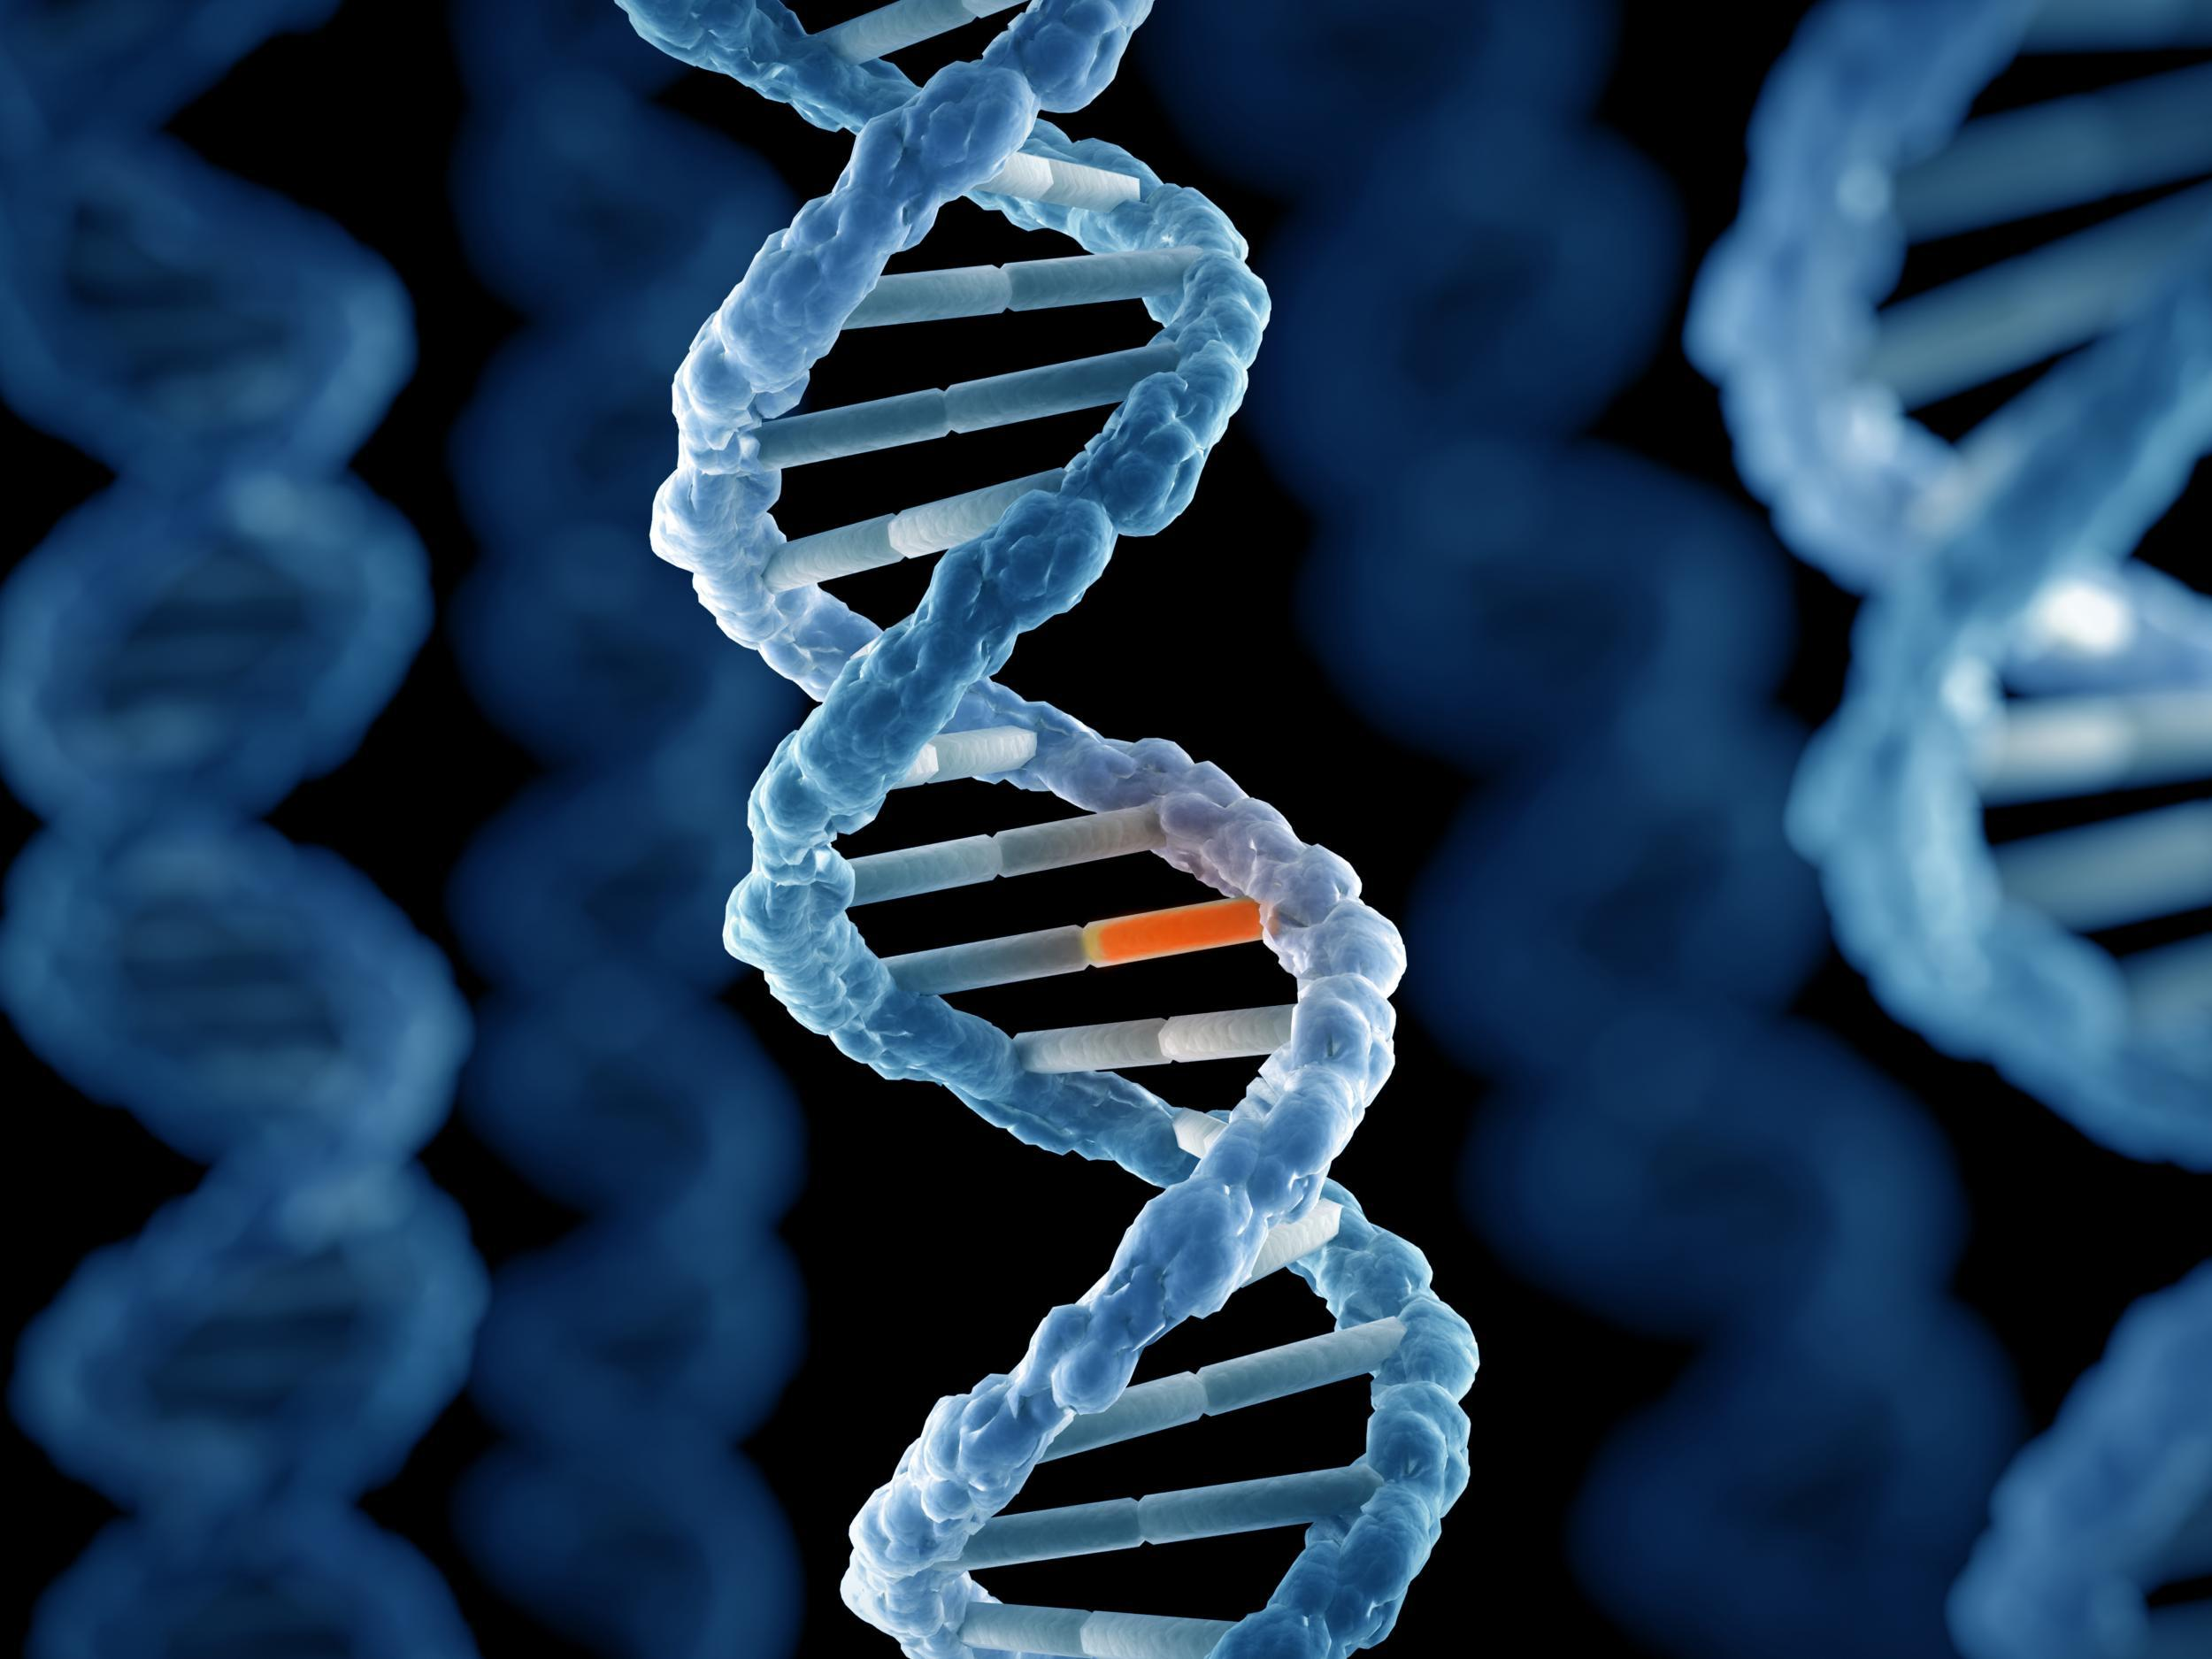 Cot death risk increased by rare genetic mutation, finds